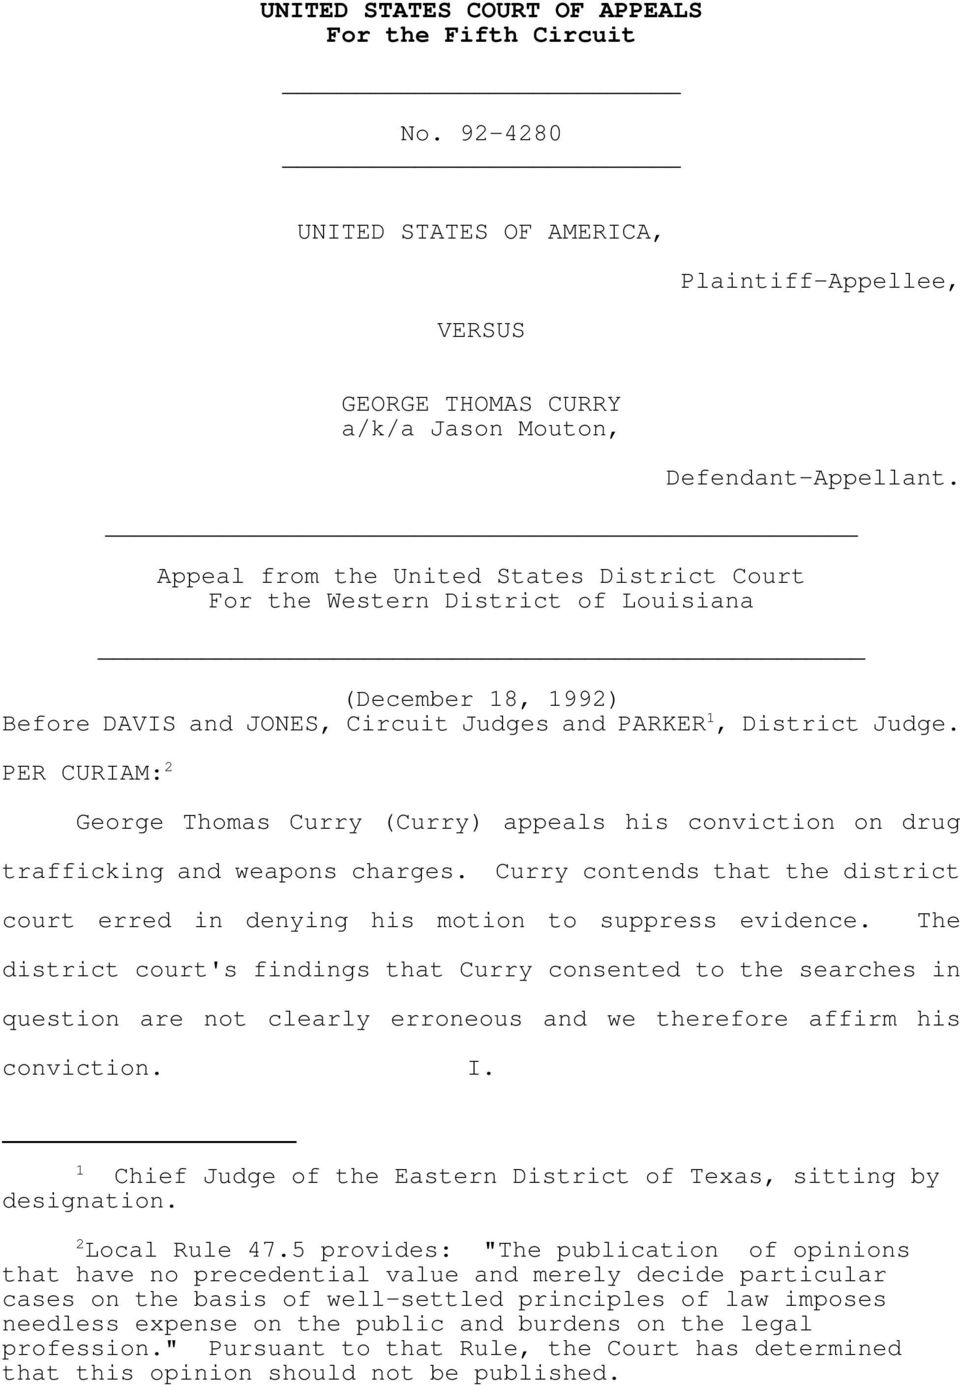 PER CURIAM: 2 George Thomas Curry (Curry) appeals his conviction on drug trafficking and weapons charges. Curry contends that the district court erred in denying his motion to suppress evidence.